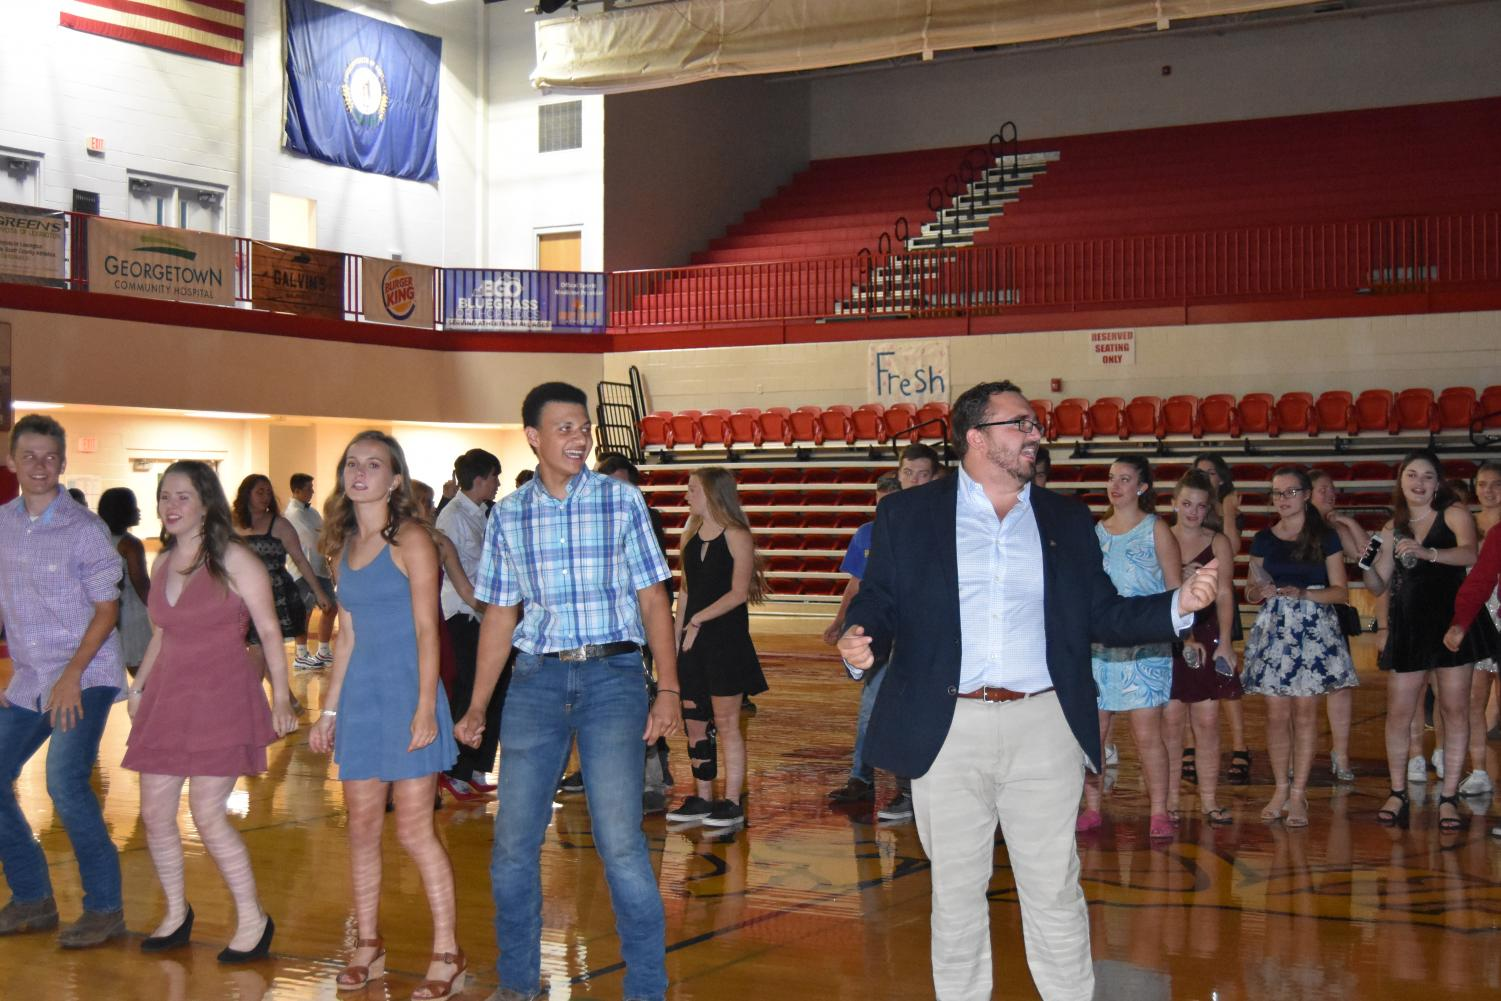 Pictured is Scott County High School's Homecoming Dance of 2019.